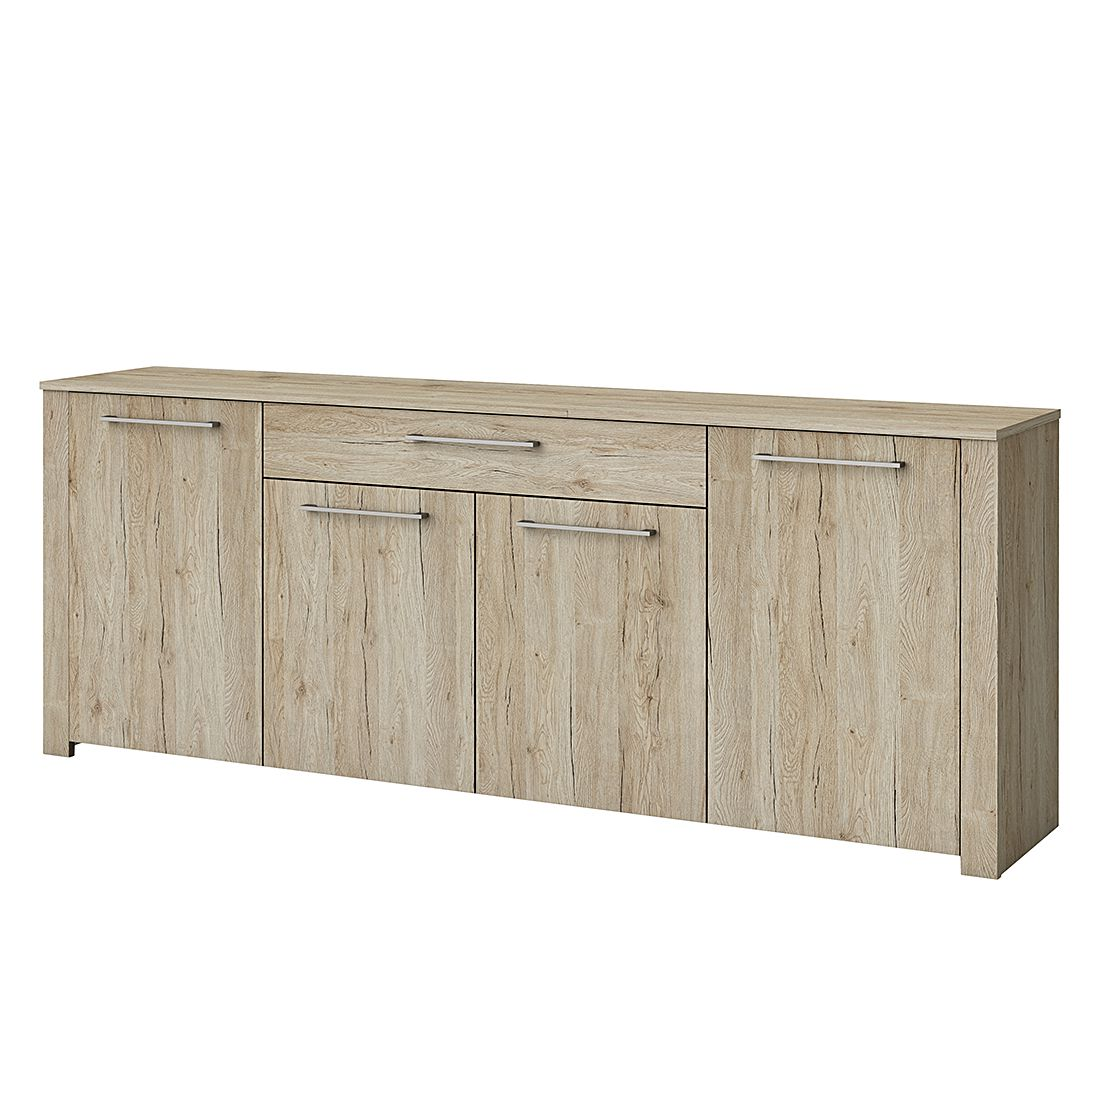 sideboard constanzia eiche sanremo dekor mooved g nstig. Black Bedroom Furniture Sets. Home Design Ideas